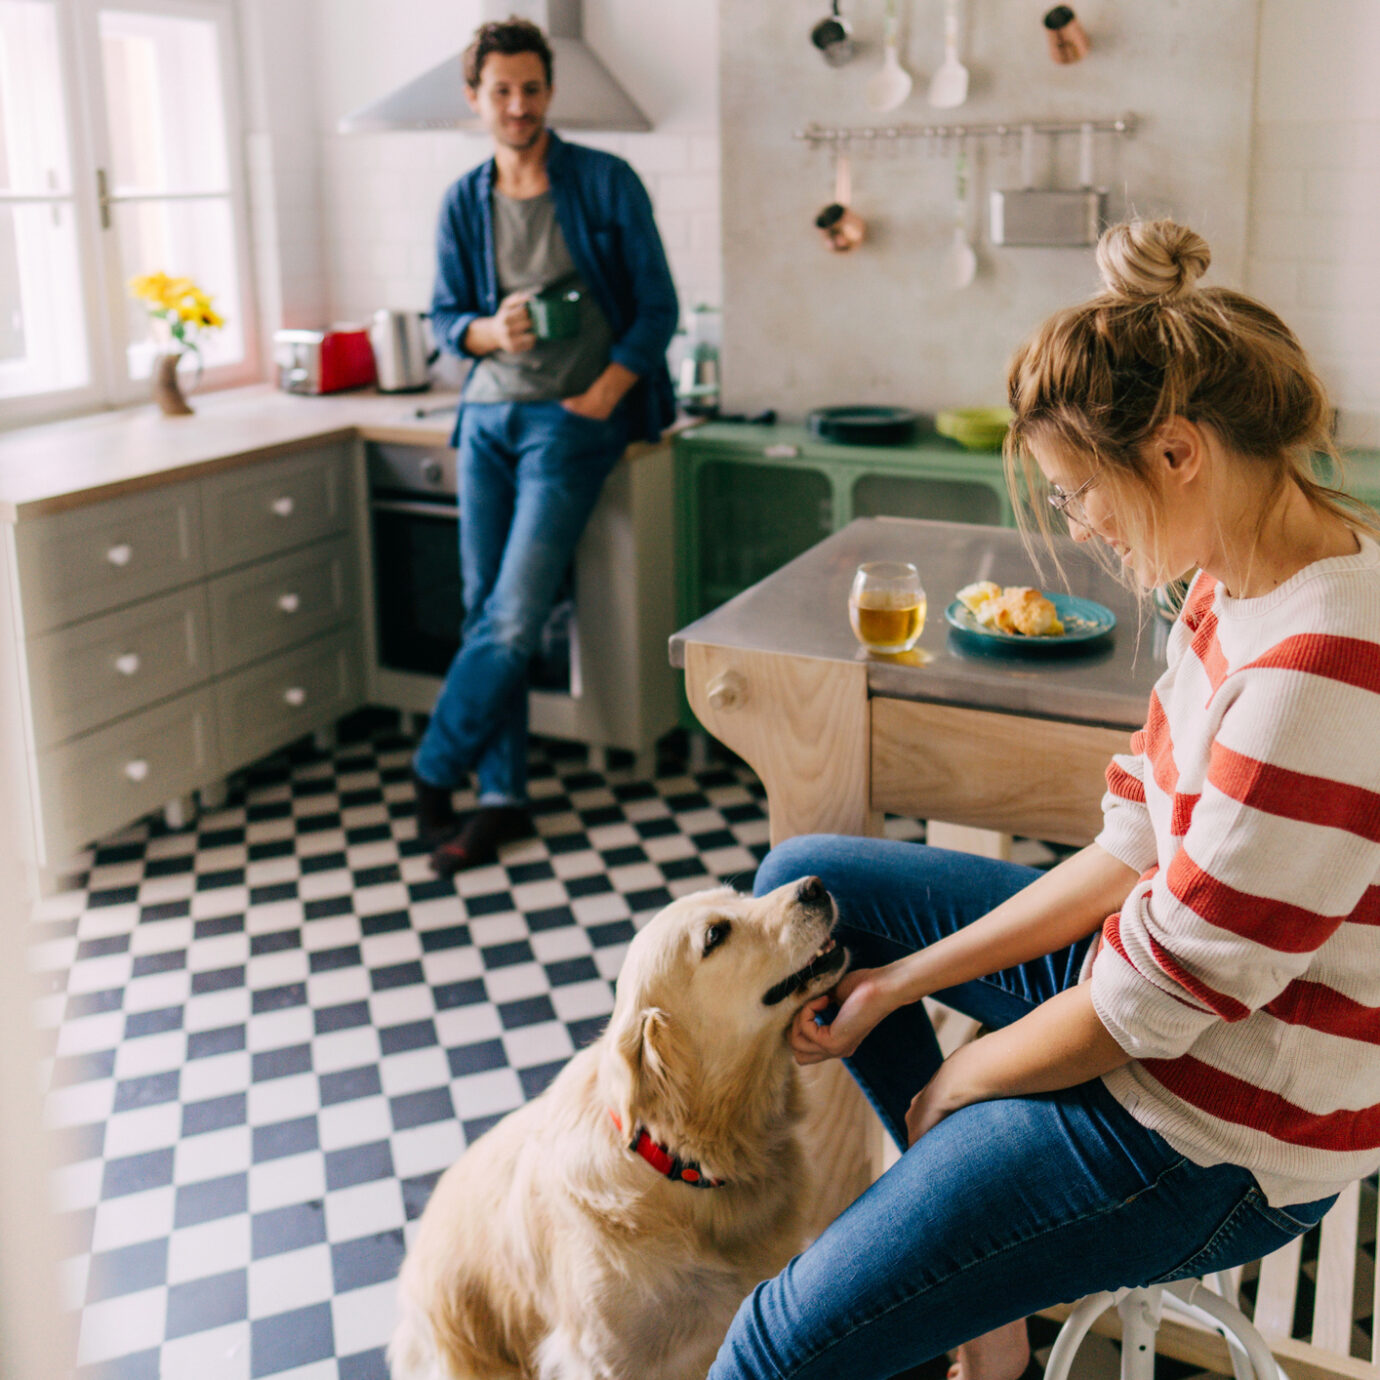 Couple drinking together in the kitchen